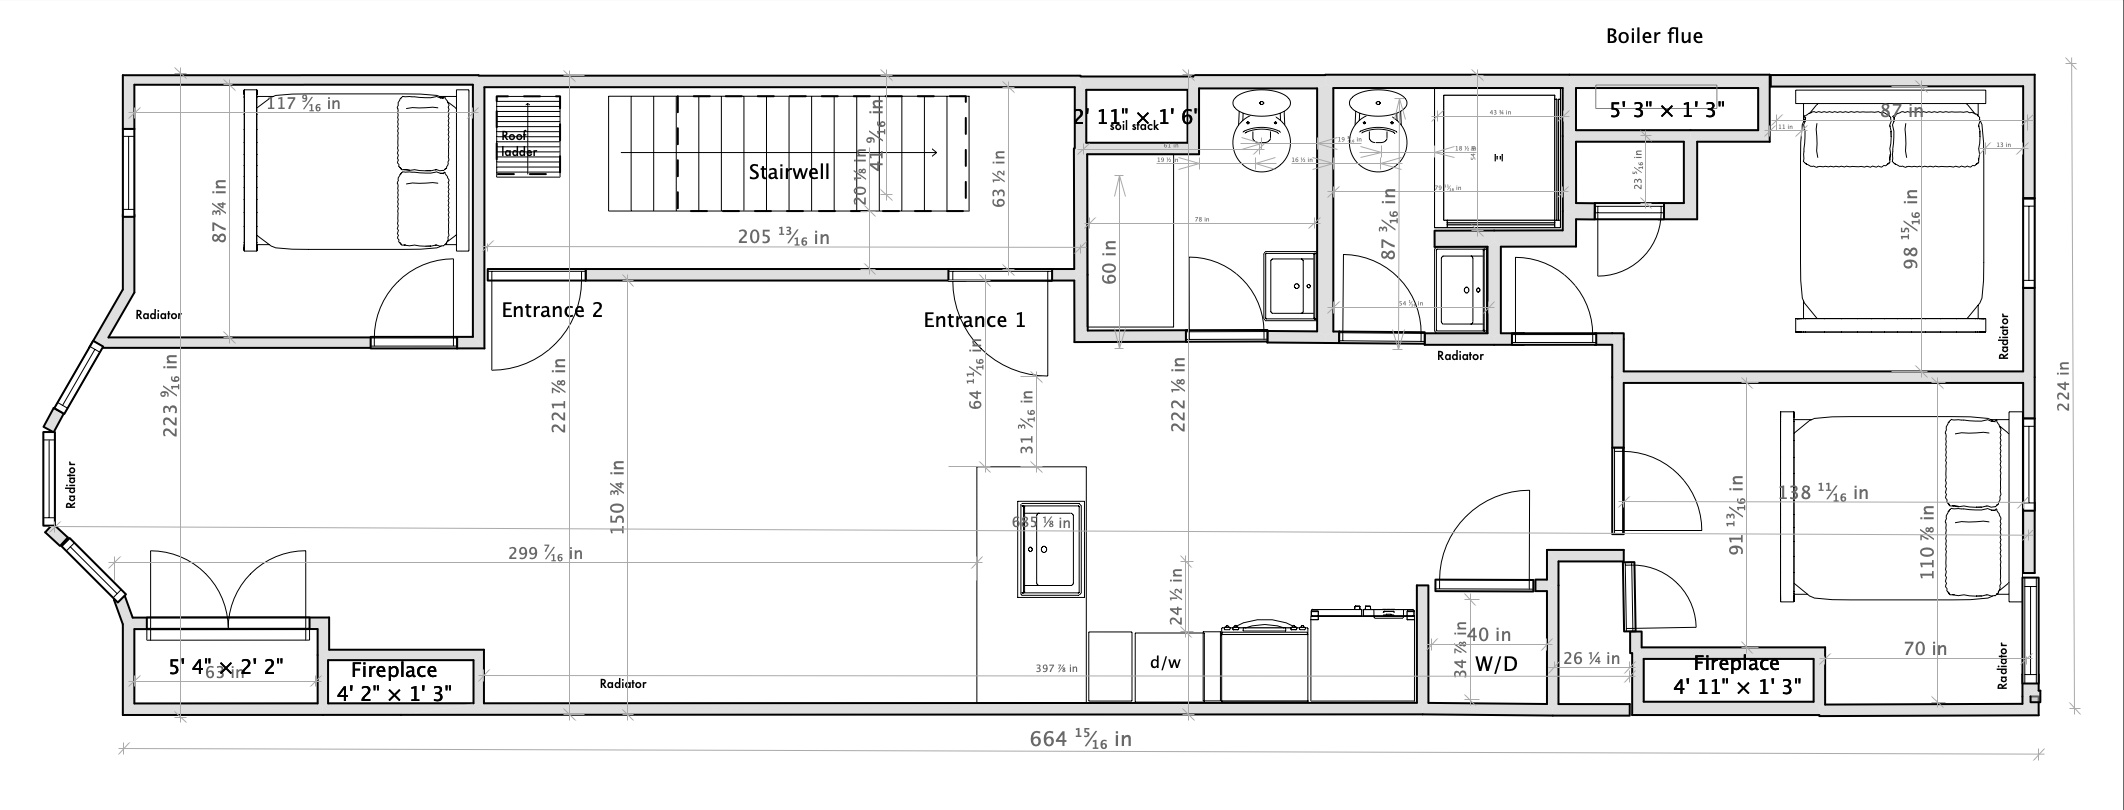 Bathroom layout question...-3rd-floor-layout.jpg